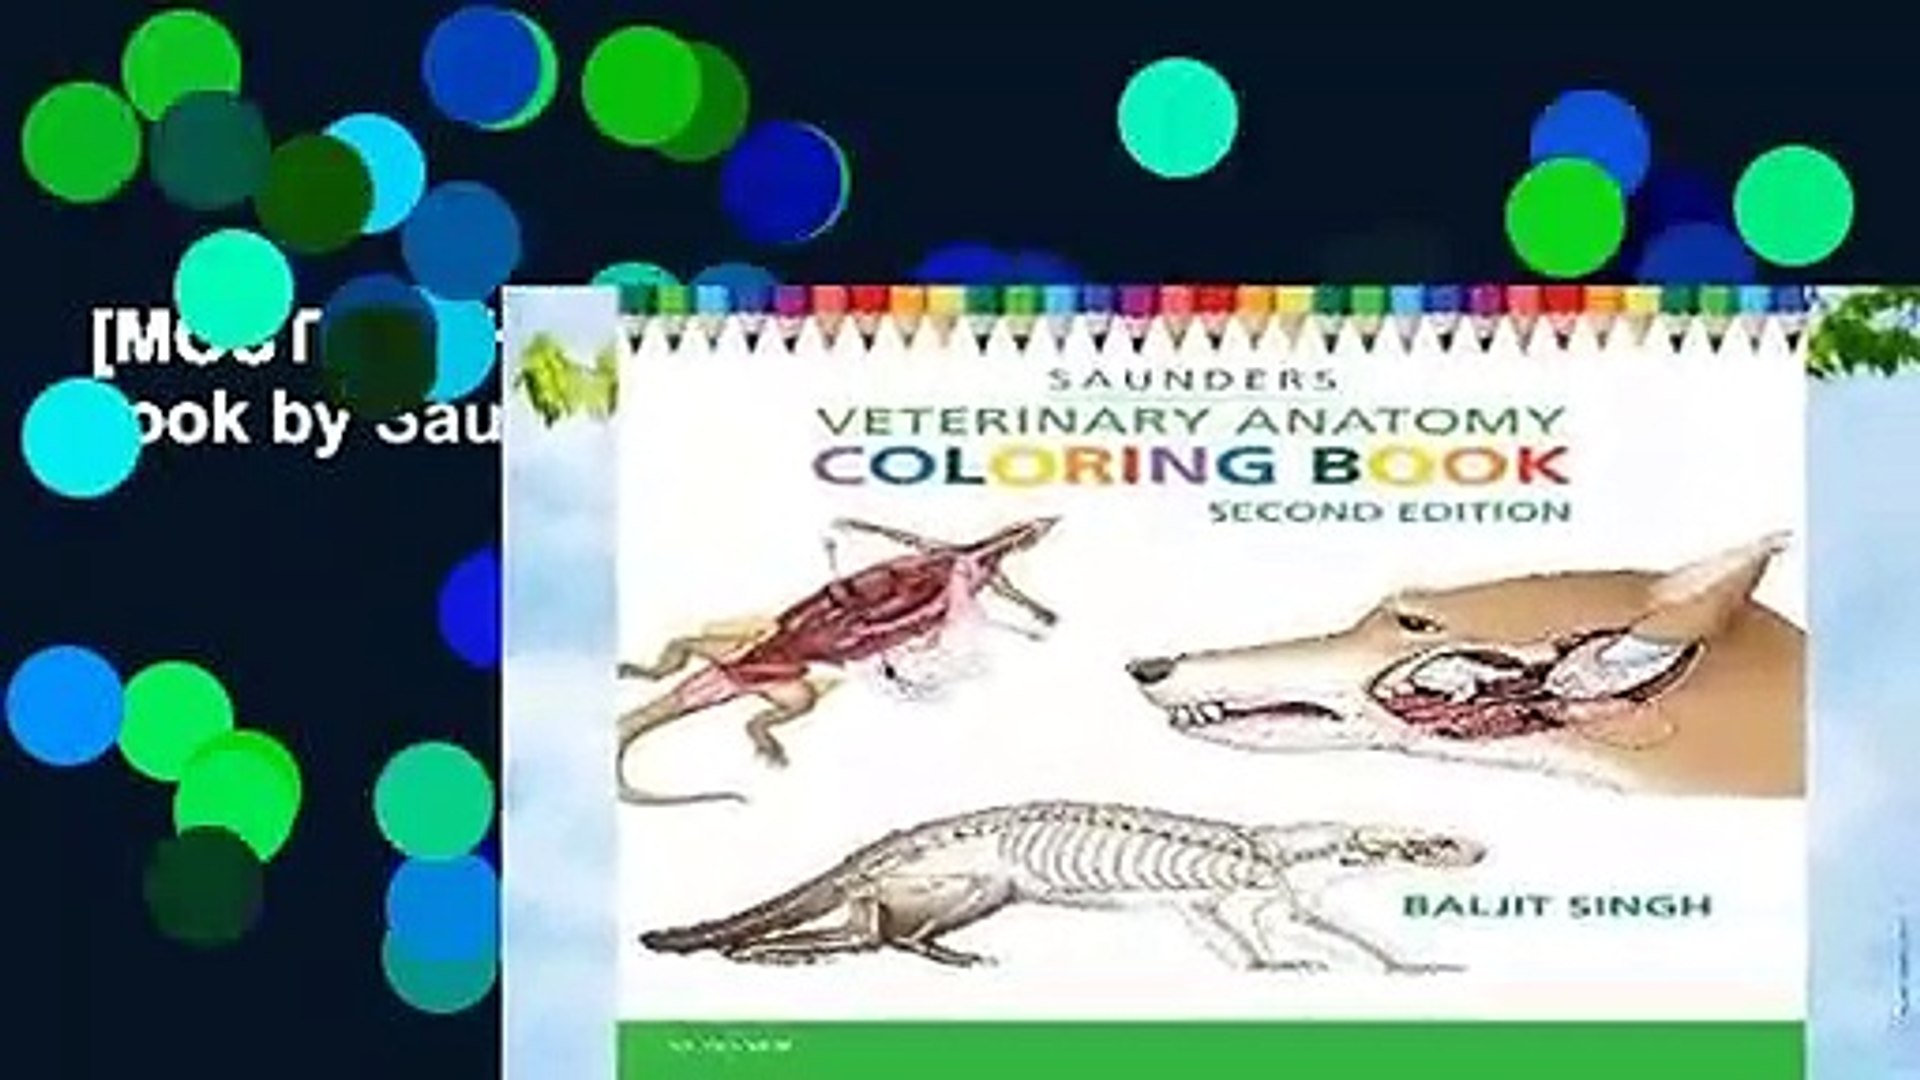 [MOST WISHED] Veterinary Anatomy Coloring Book by Saunders